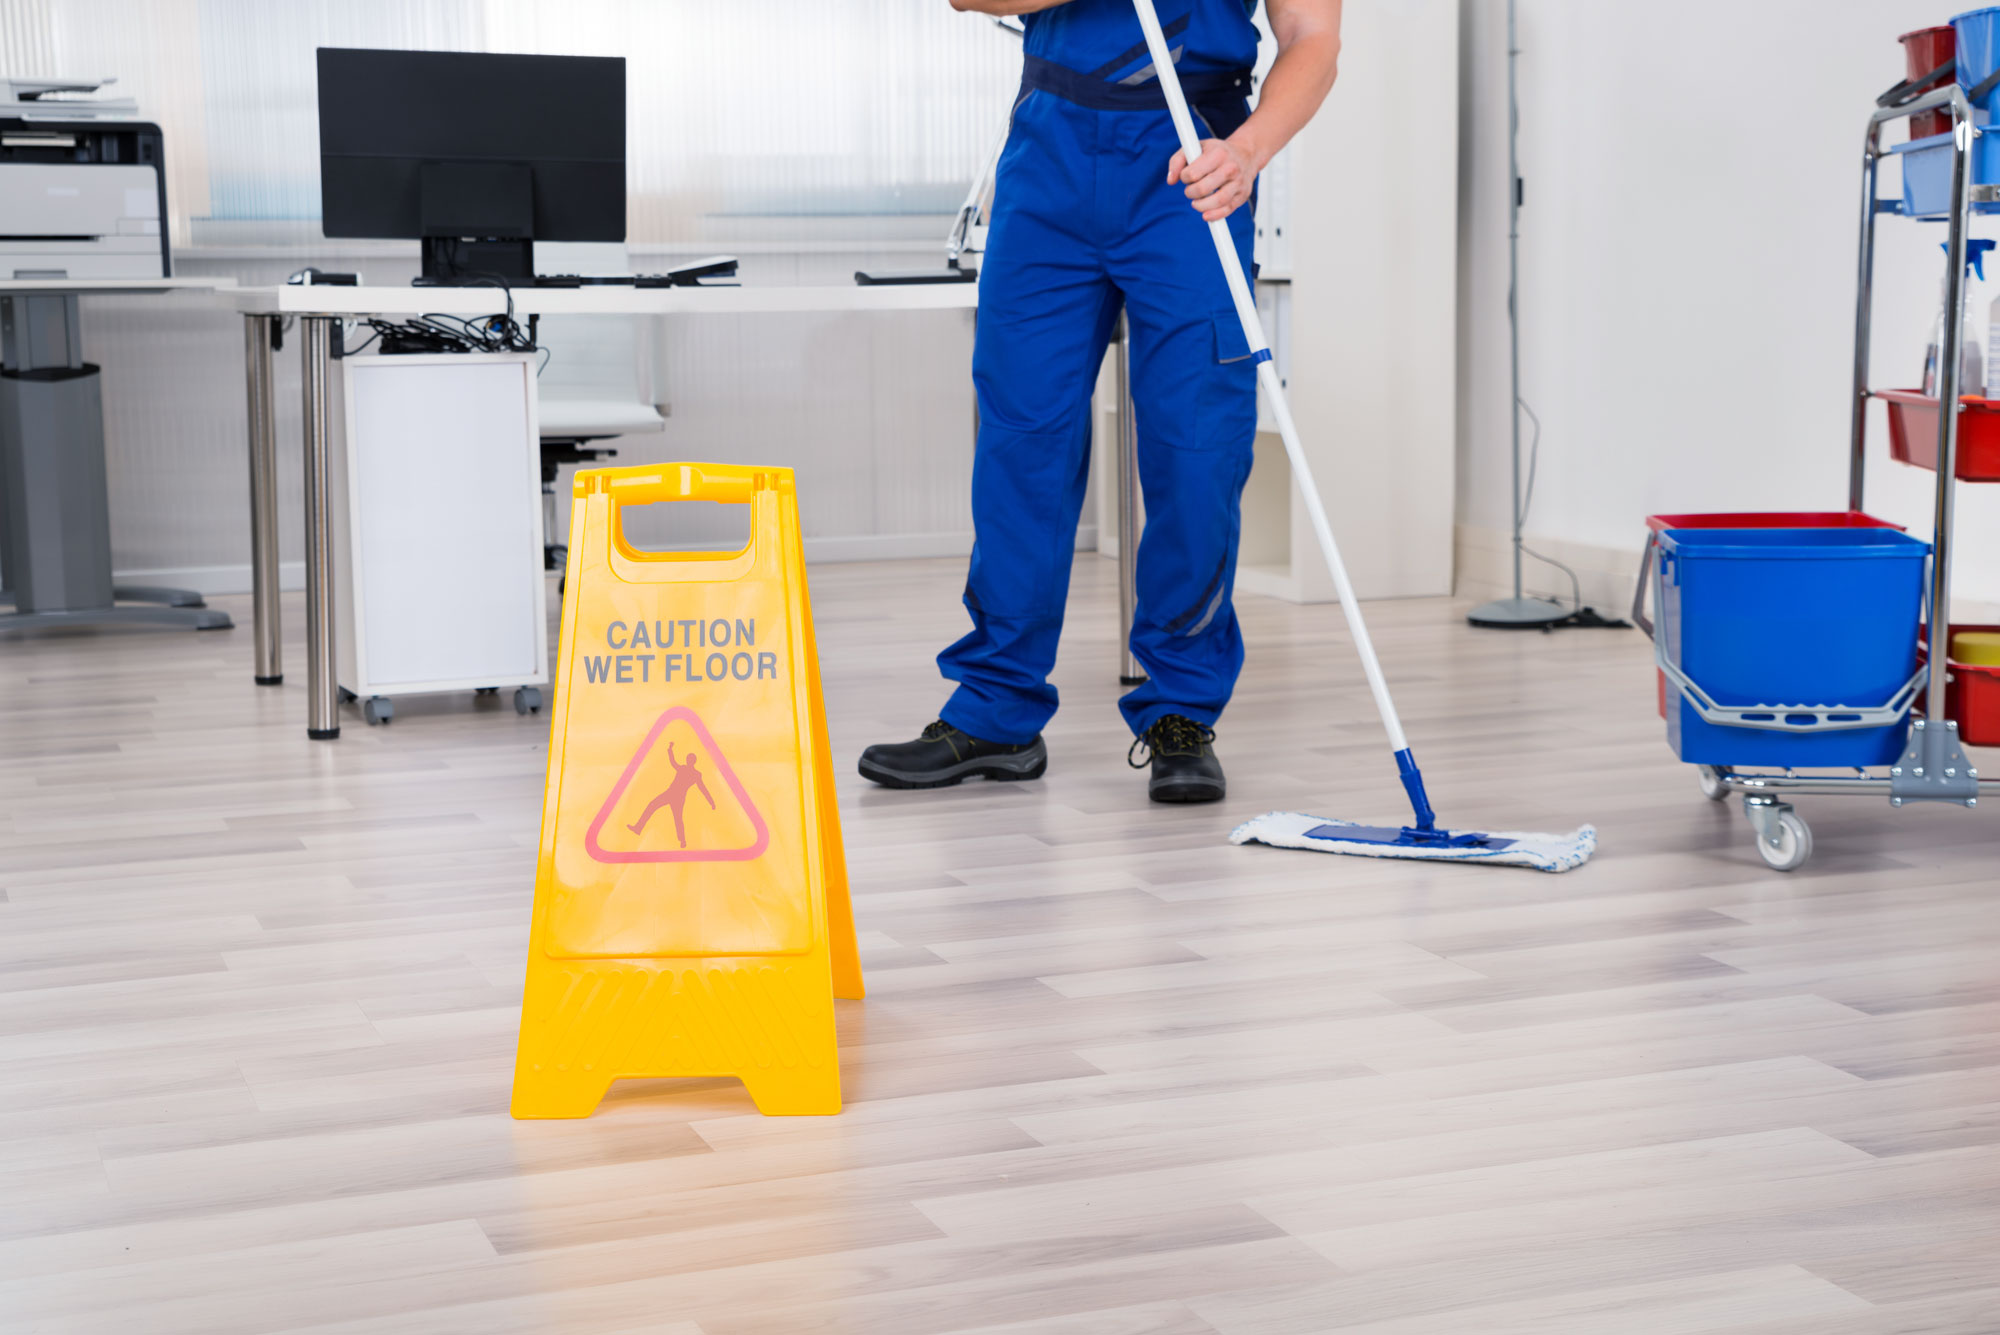 janitor wearing blue uniform mopping commercial office with wet floor sign propped up